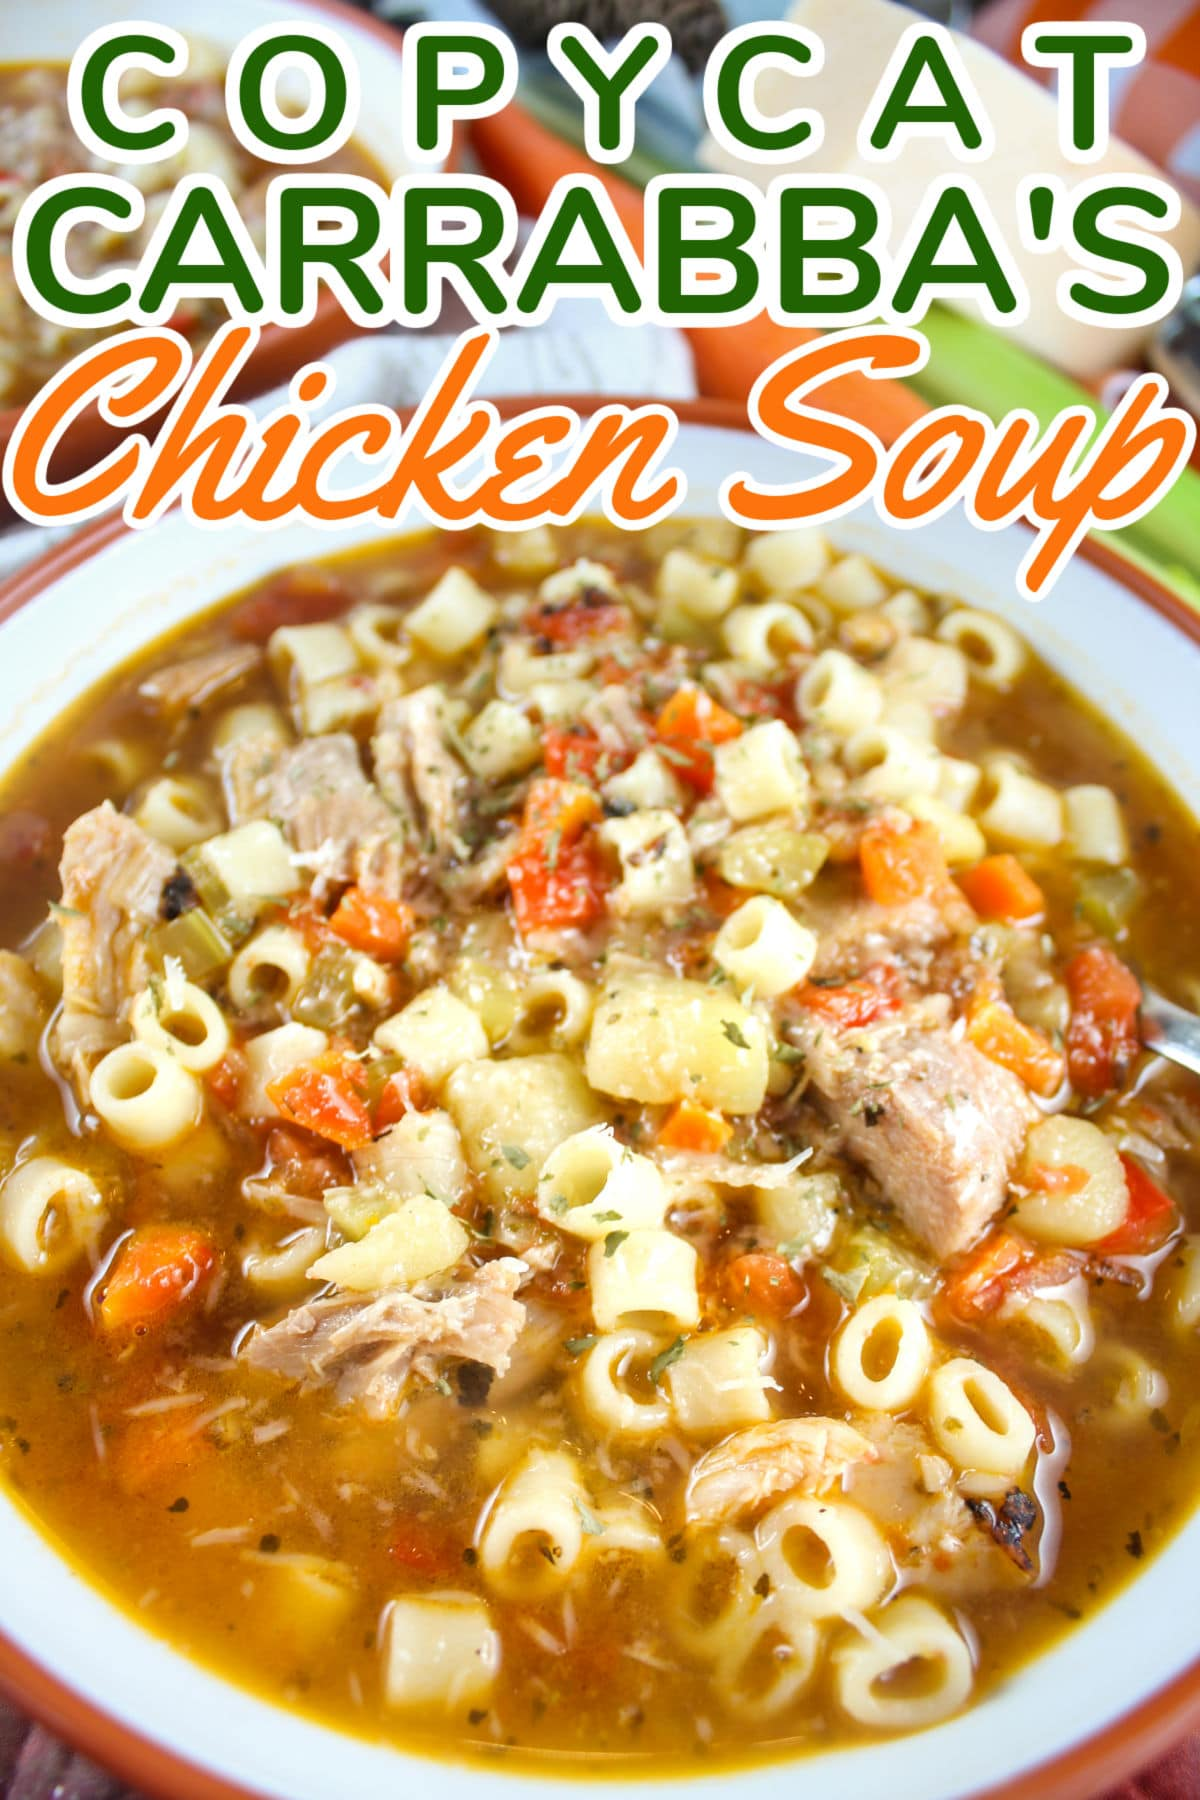 Carrabba's Spicy Chicken Soup is easily going down as my new go-to soup recipe! It's layered with flavors and oh-so comforting!!!! Plus - I used leftover rotisserie chicken to make it even quicker.  via @foodhussy